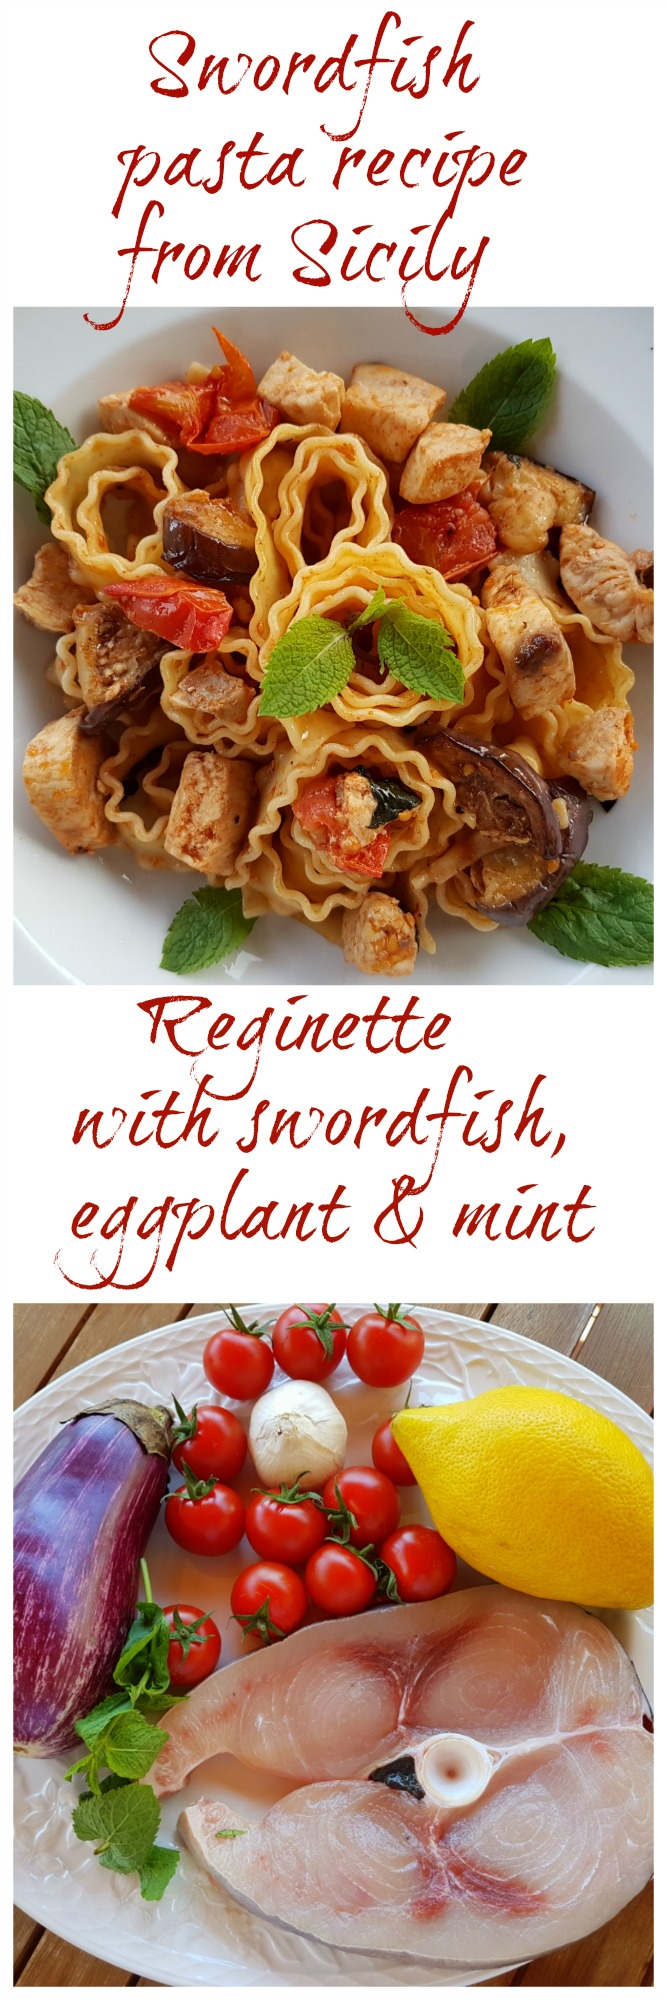 Reginette pasta with swordfish